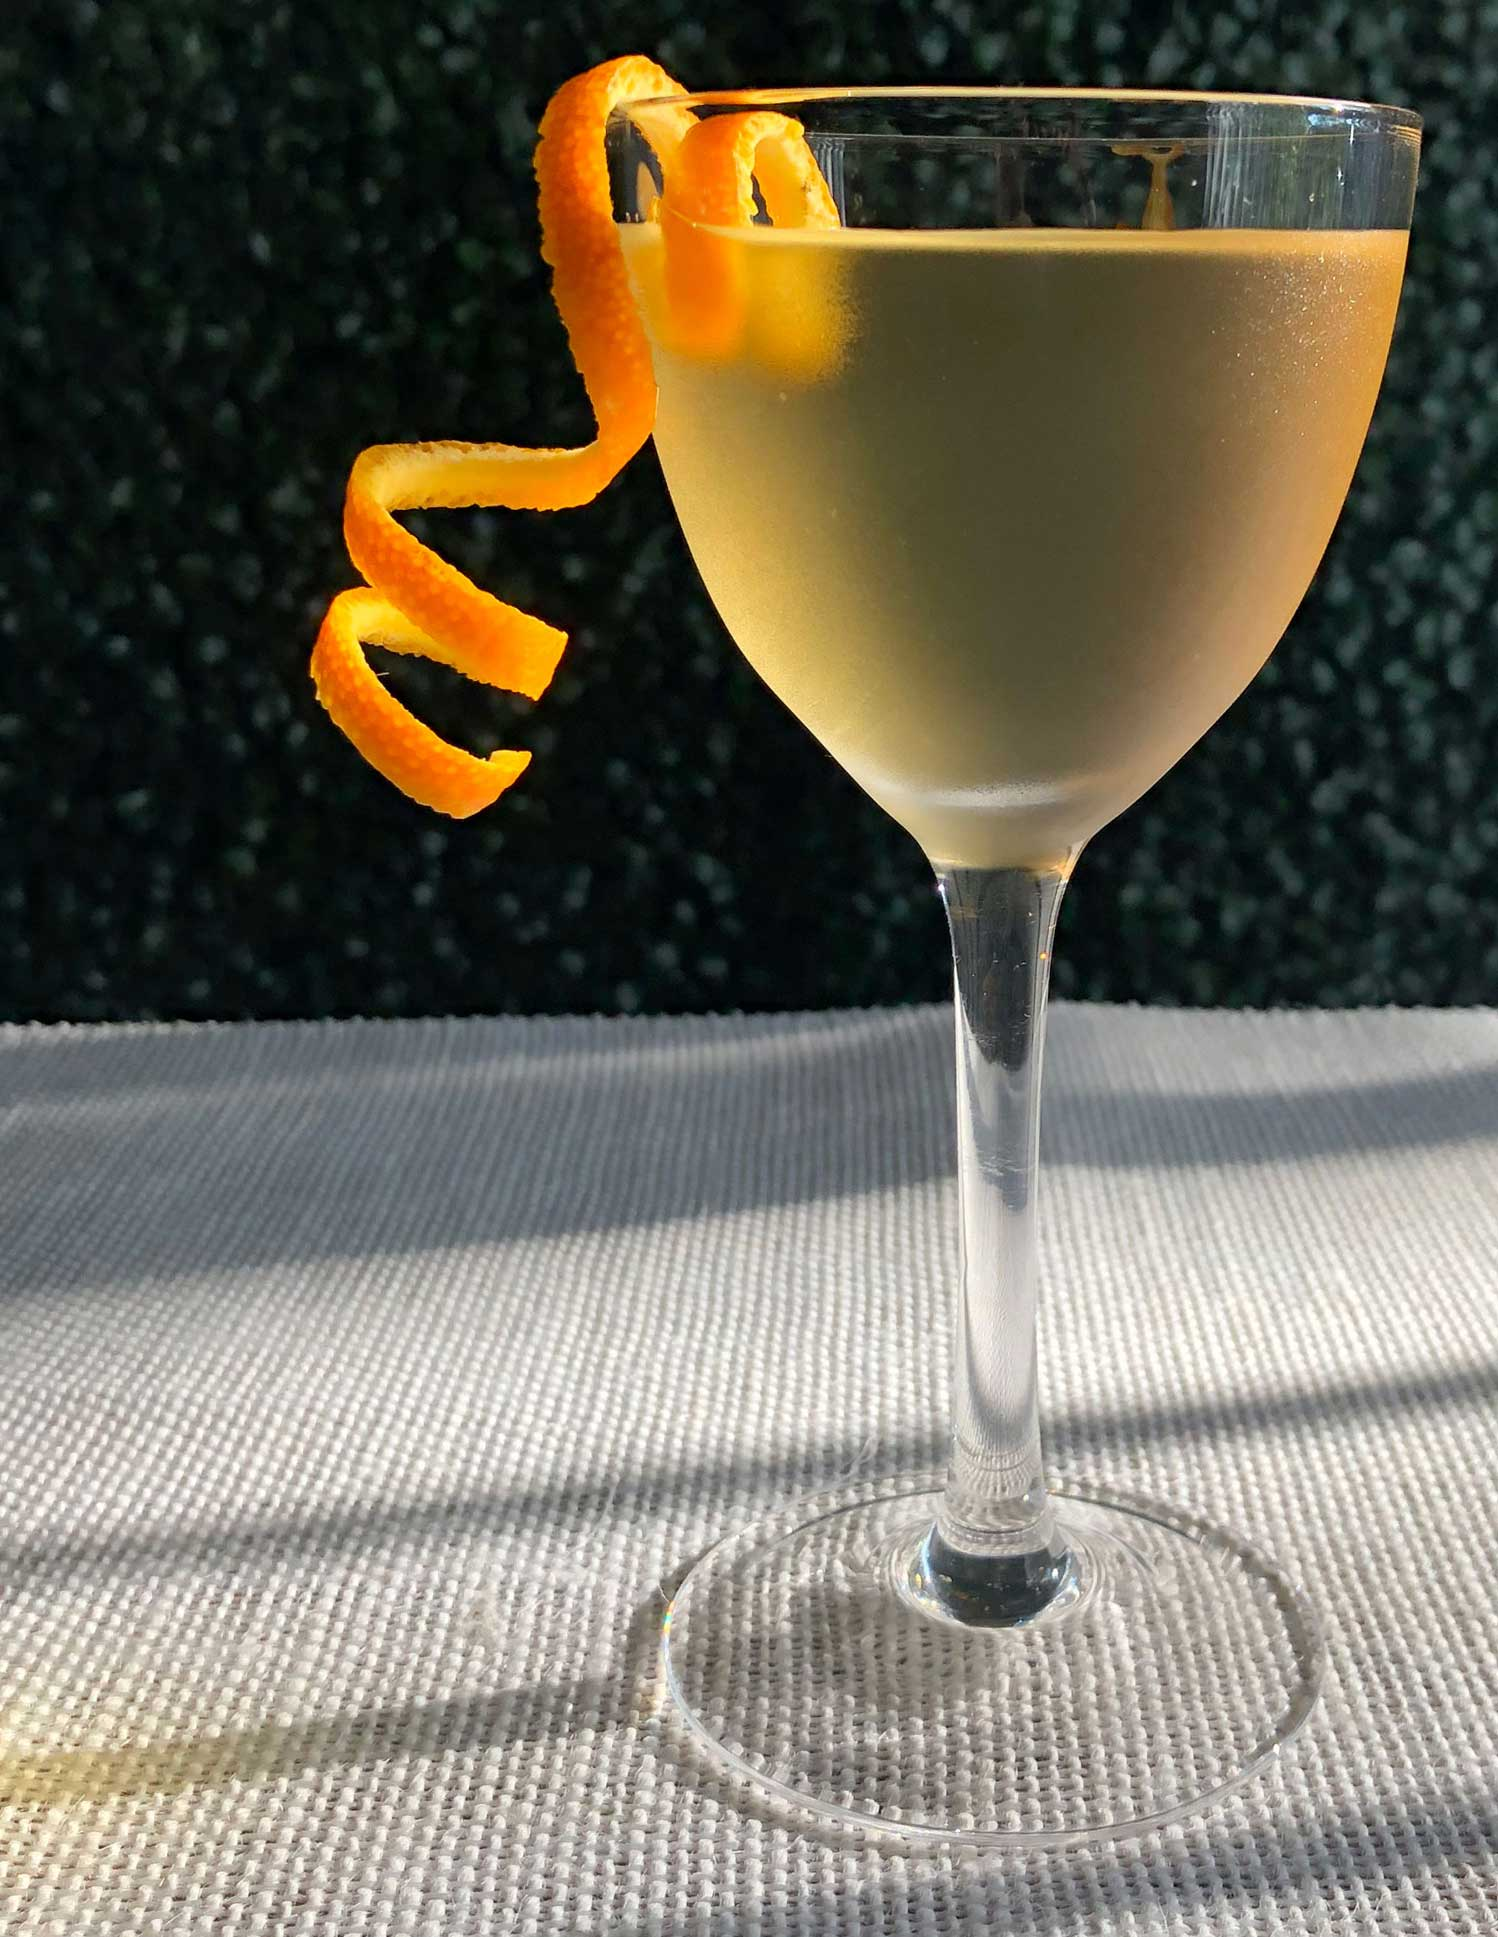 An example of the The Stirrup, the mixed drink (cocktail) featuring blanco tequila, Comoz Vermouth Blanc, and Kronan Swedish Punsch; photo by Lee Edwards